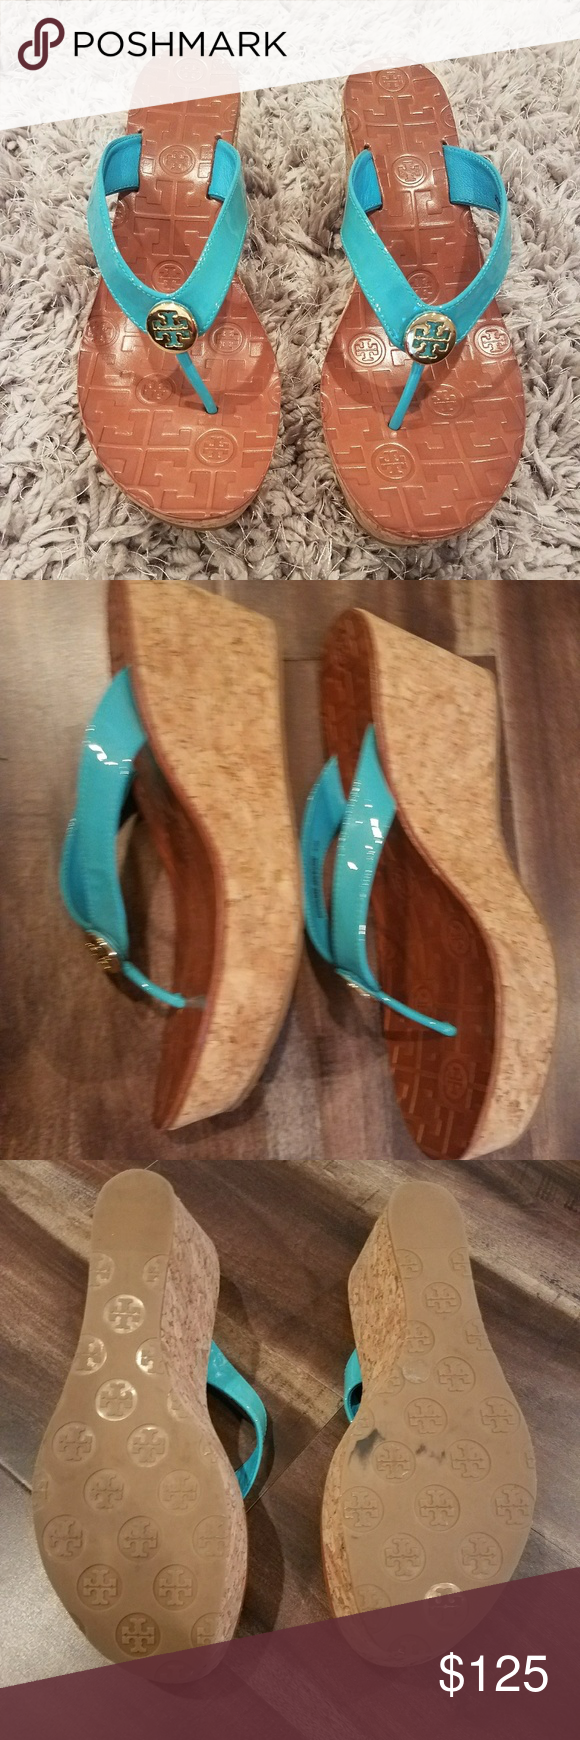 TORY BURCH THORA Turquoise Patent Leather Wedge TORY BURCH THORA Turquoise Patent Leather Wedge Thong Sandals Shoes Only worn twice Size 8.5 Tory Burch Shoes Wedges